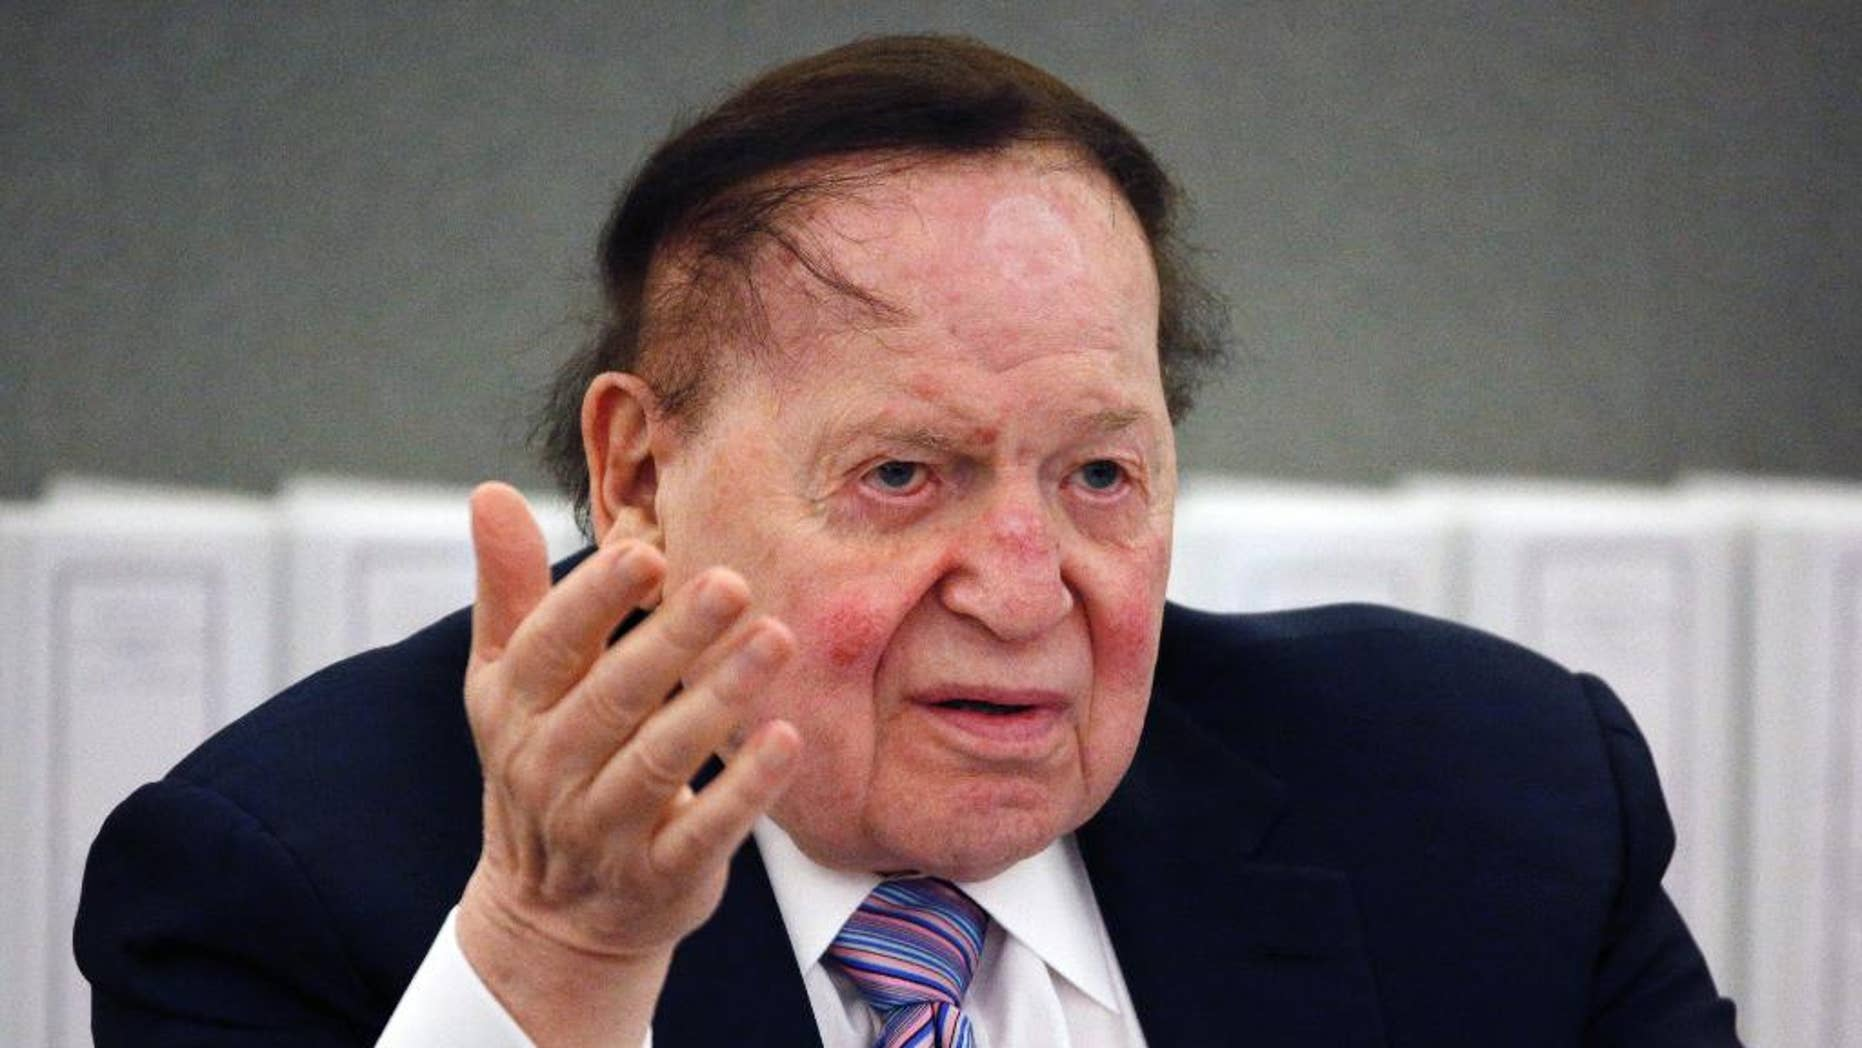 Las Vegas Sands Corp. Chairman and CEO Sheldon Adelson speaks in Las Vegas, May 4, 2015. (Associated Press)